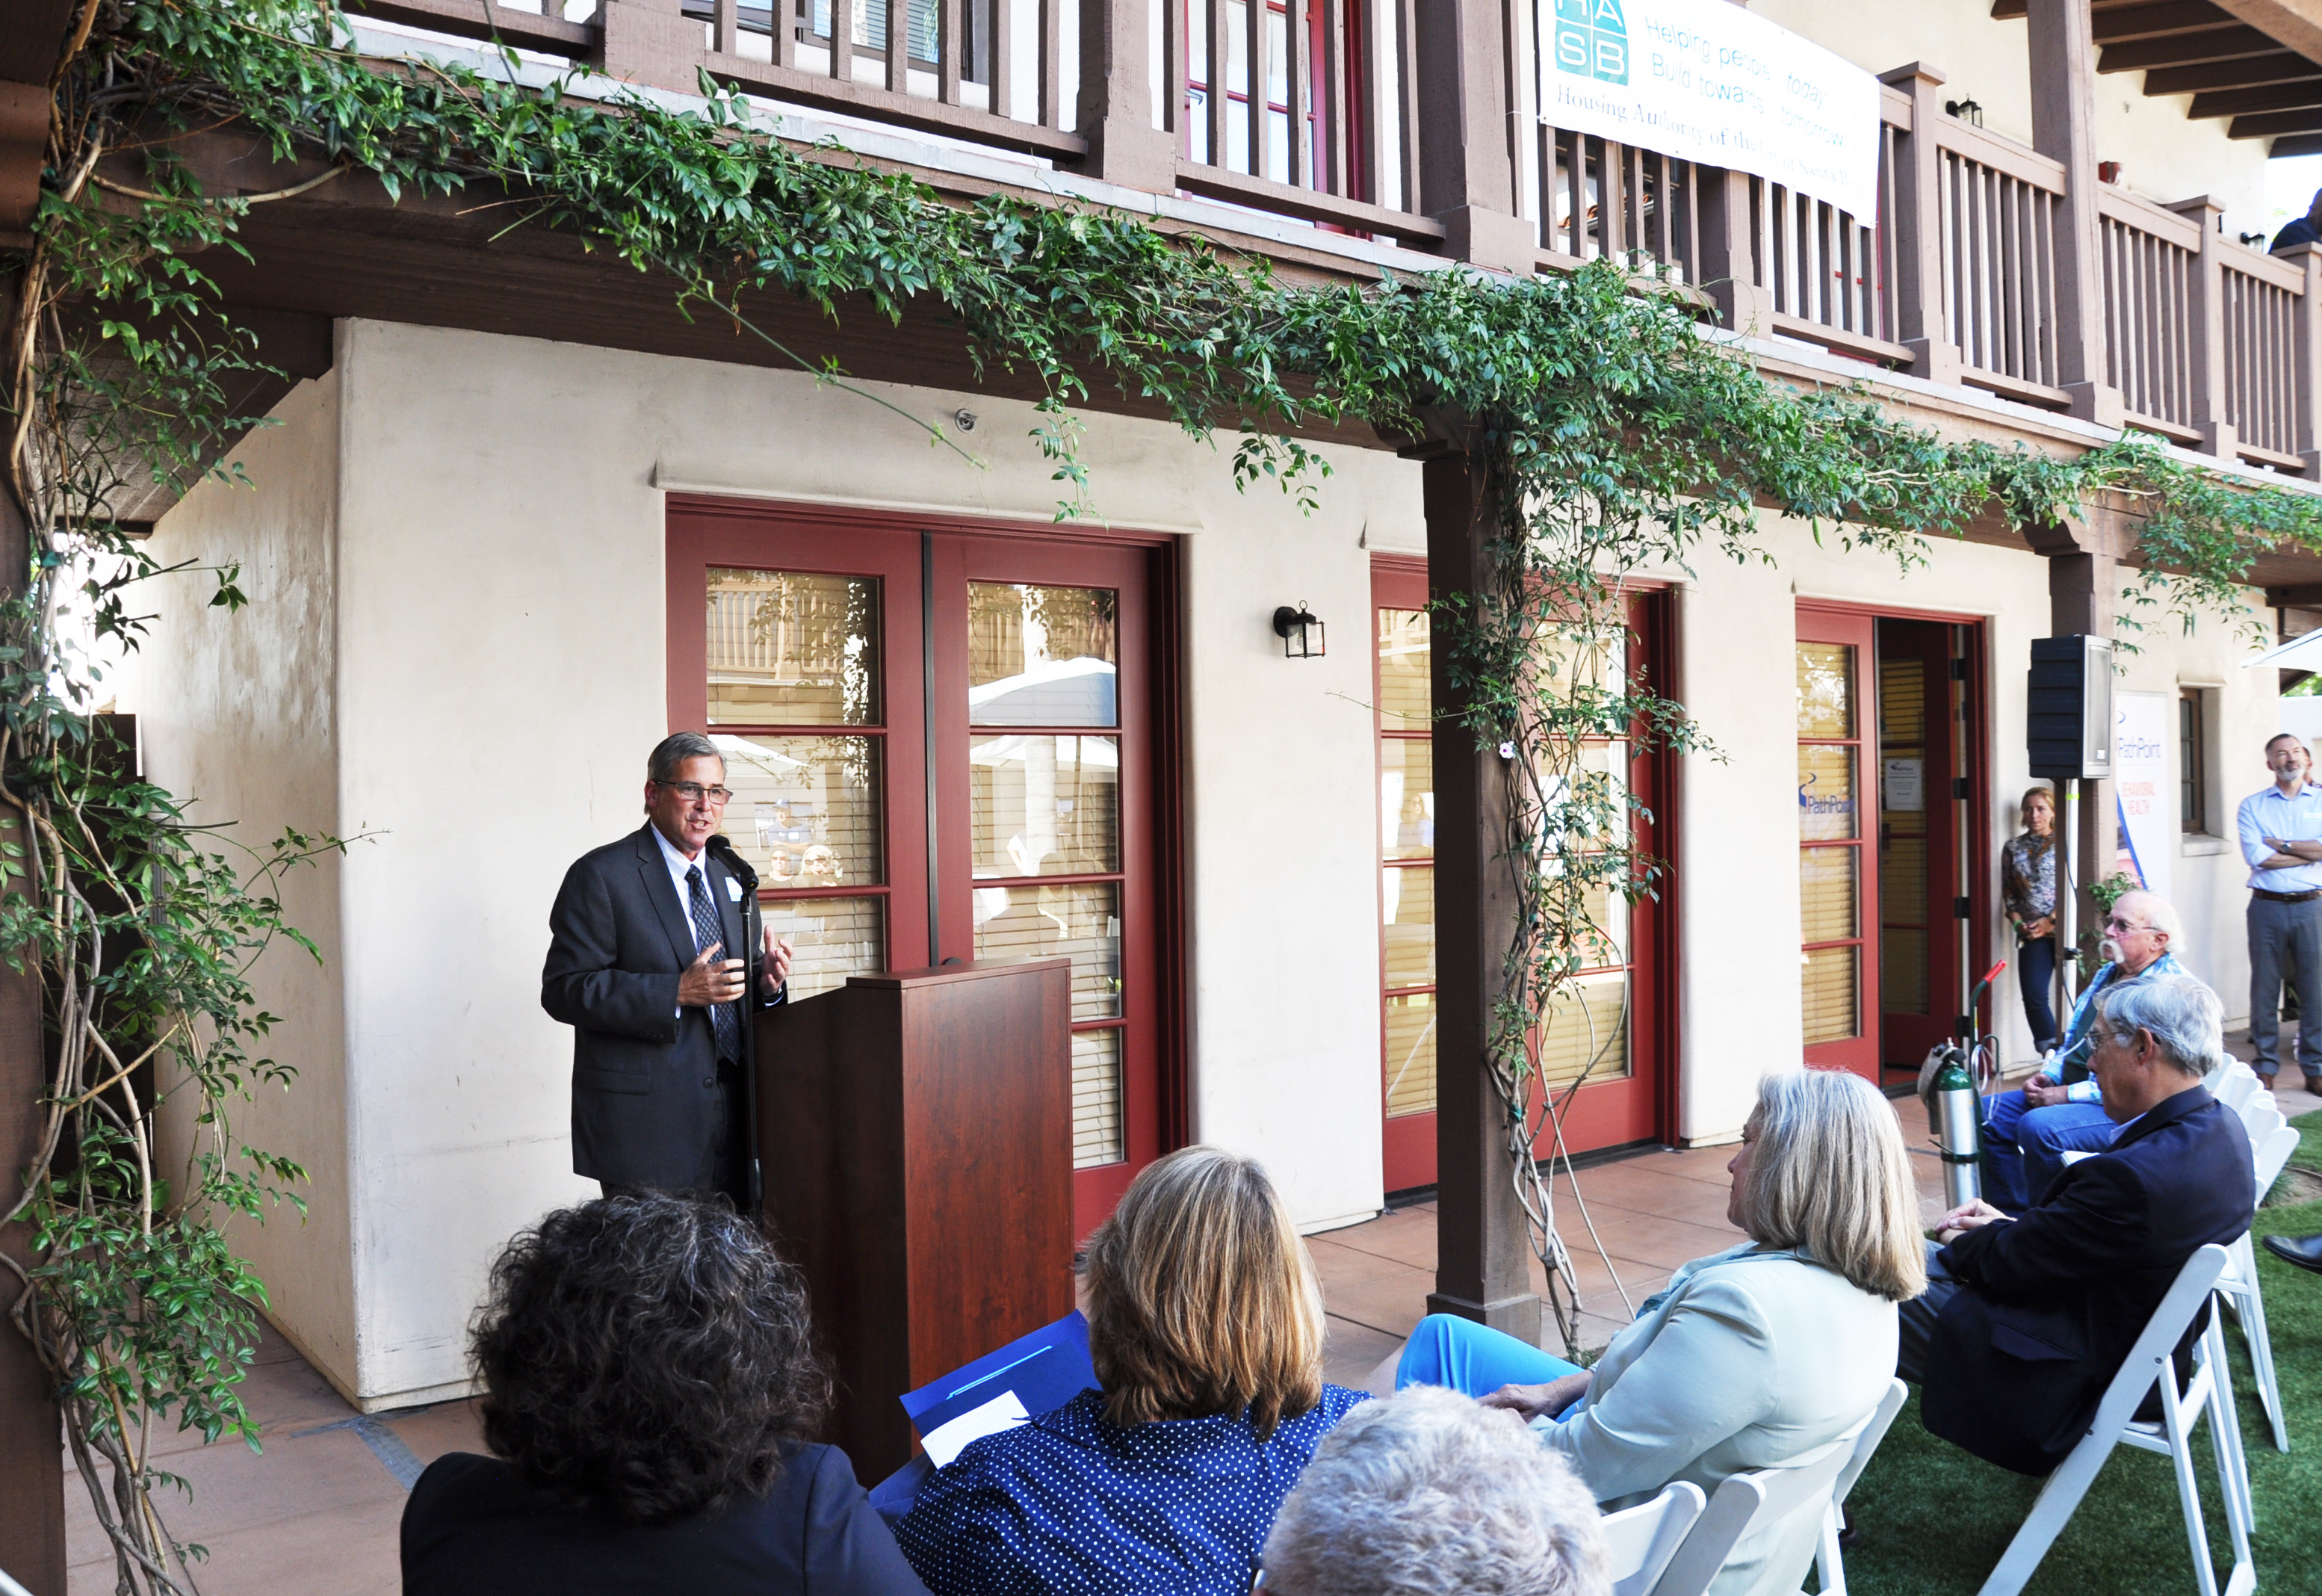 El Carrillo Affordable Housing Development Celebrates 10 Years of Housing the Homeless